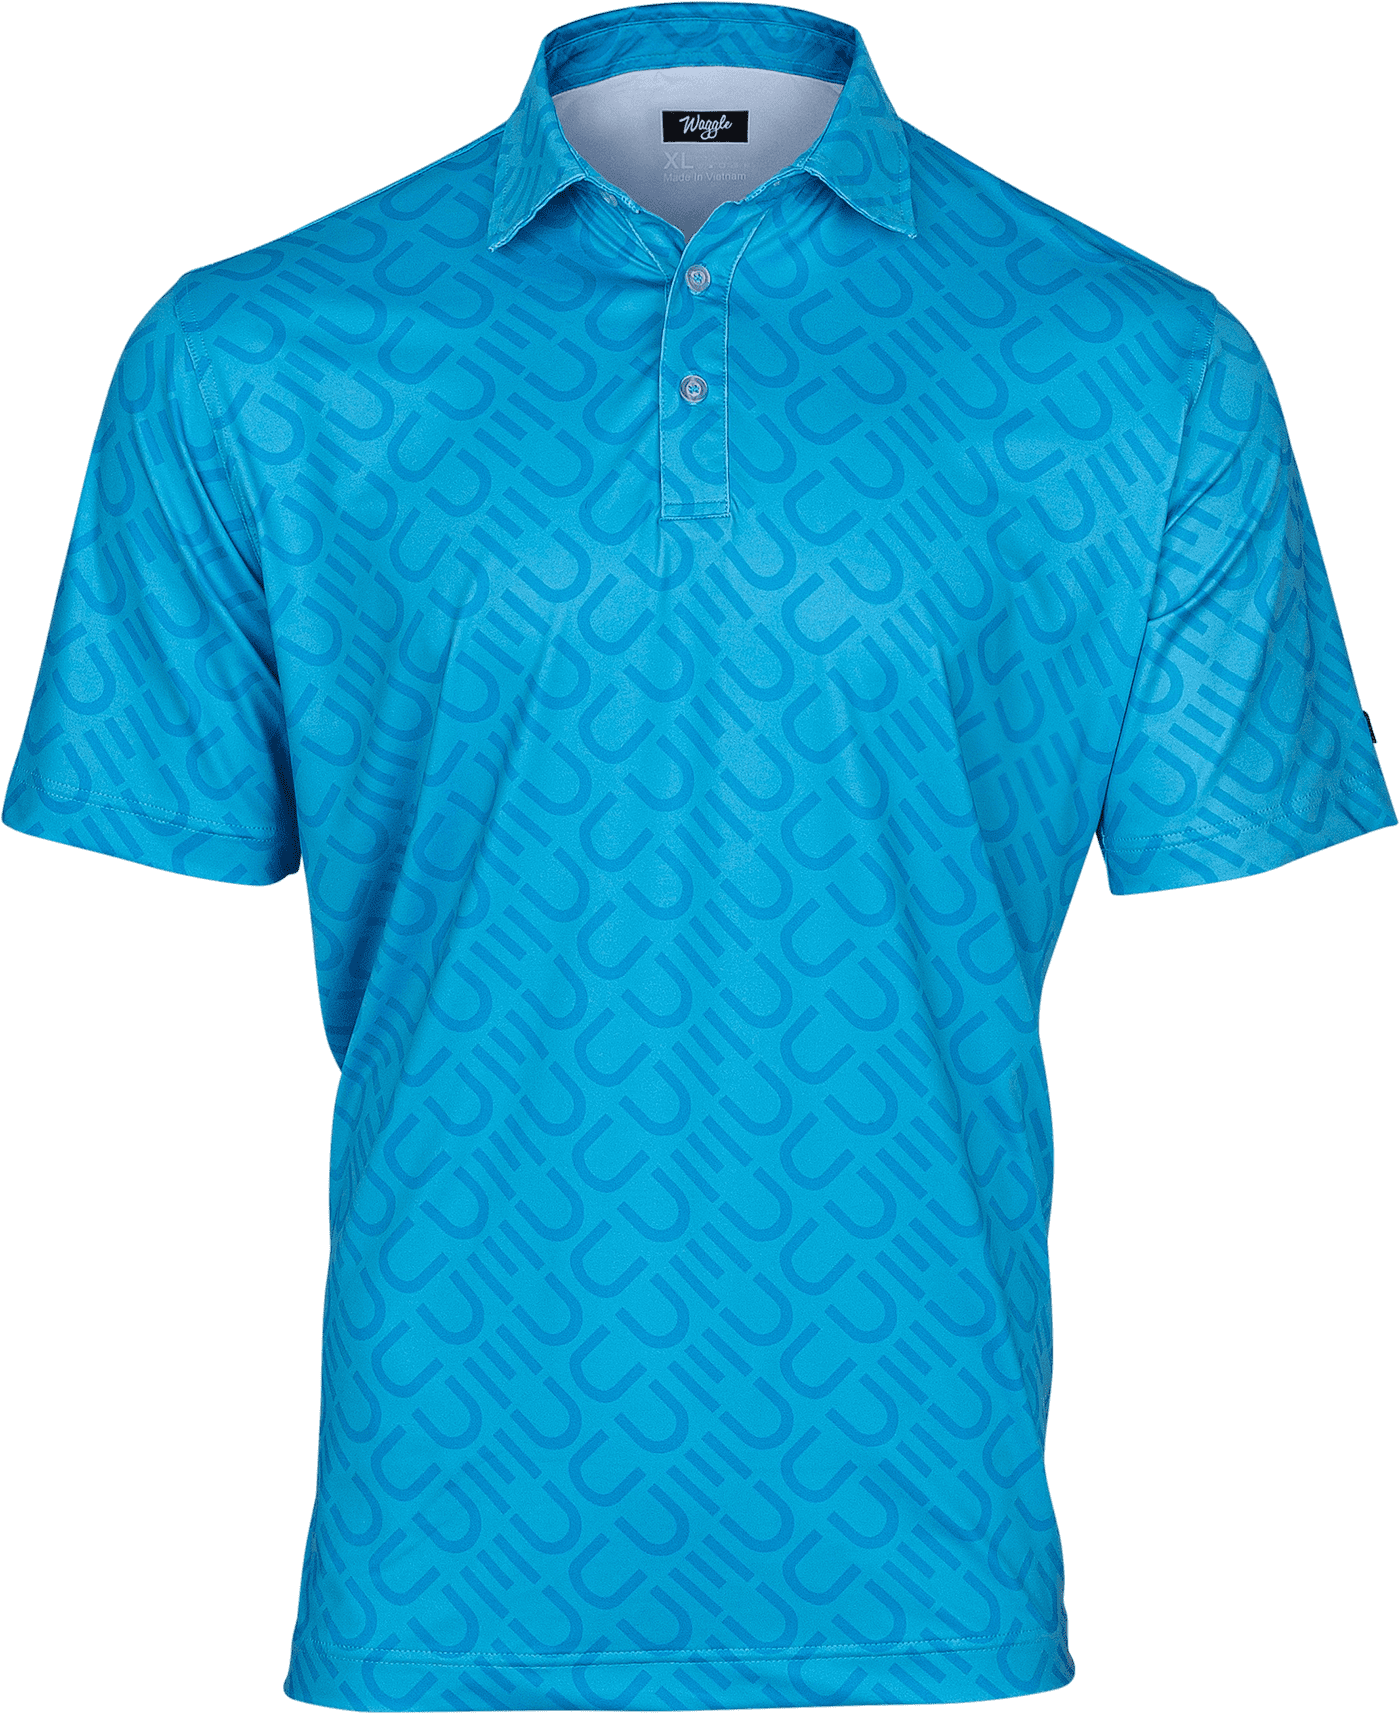 DUDE Golf Polo, Blue Pattern - Dude Products